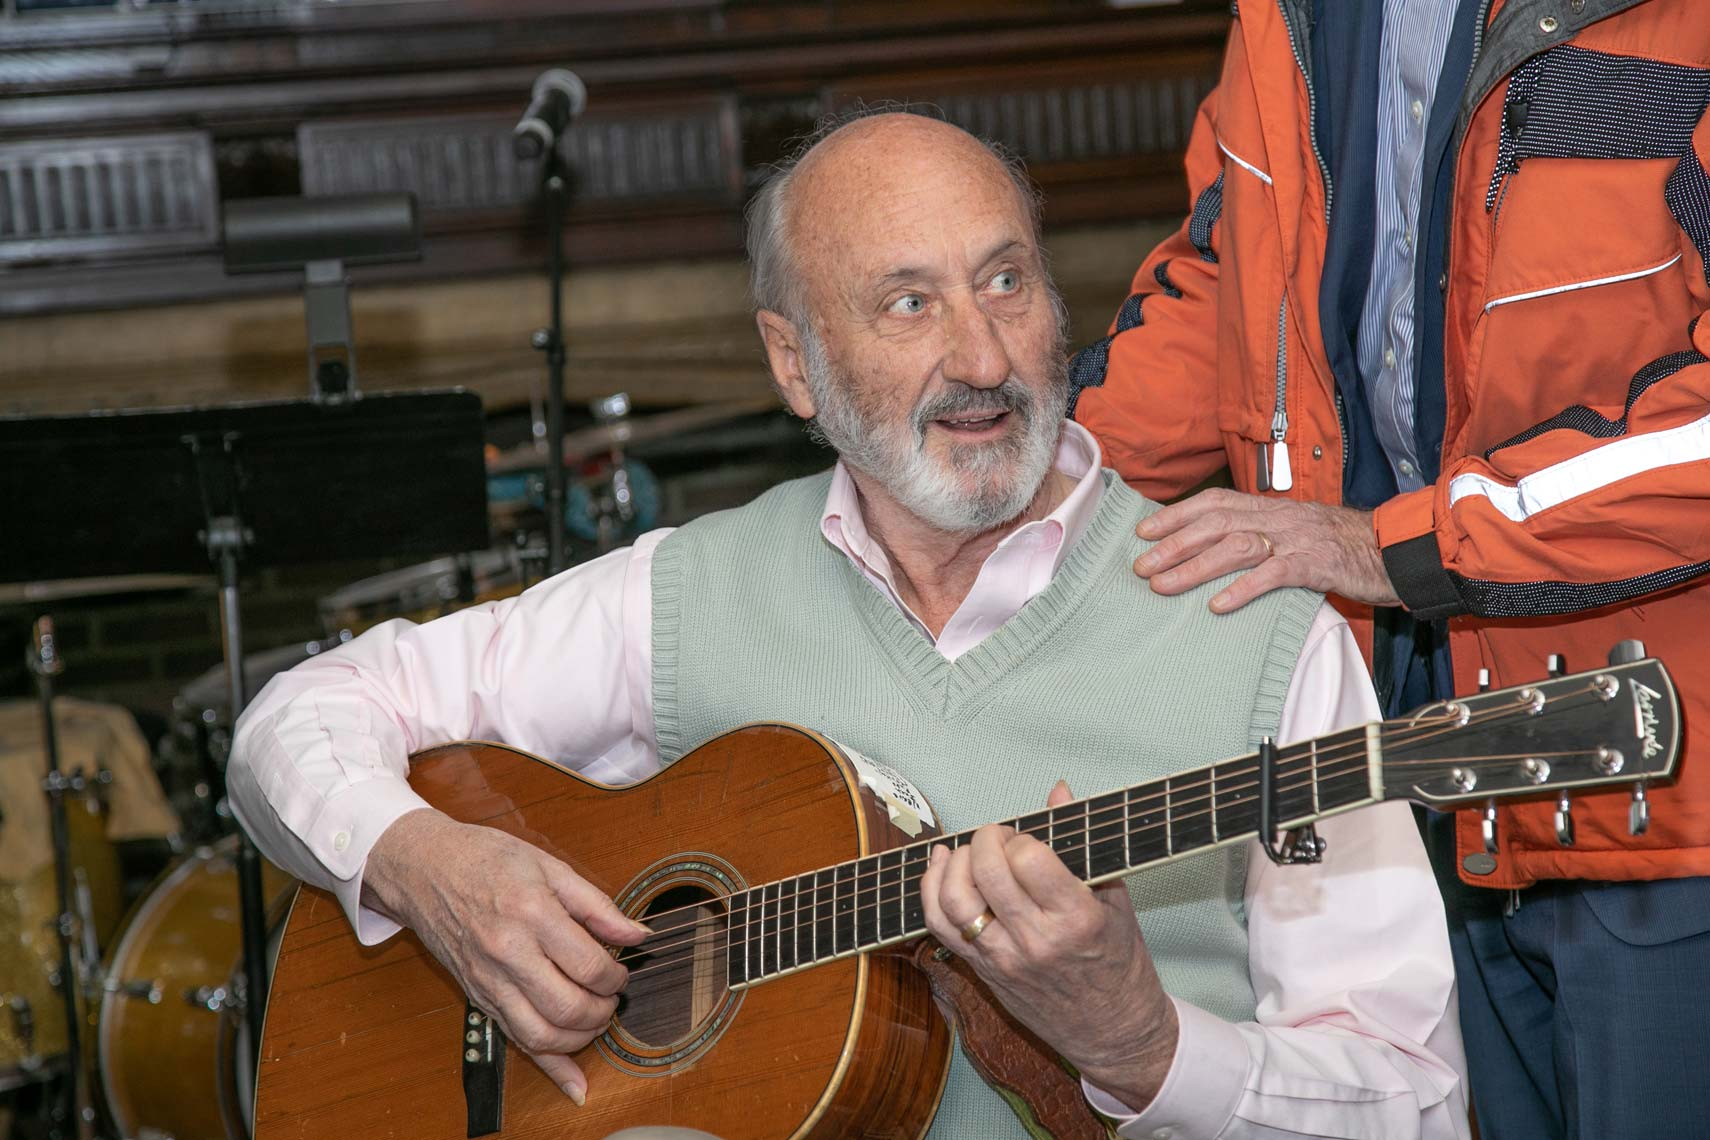 Livingston Taylor warmly greets Noel Paul Stookey before the show